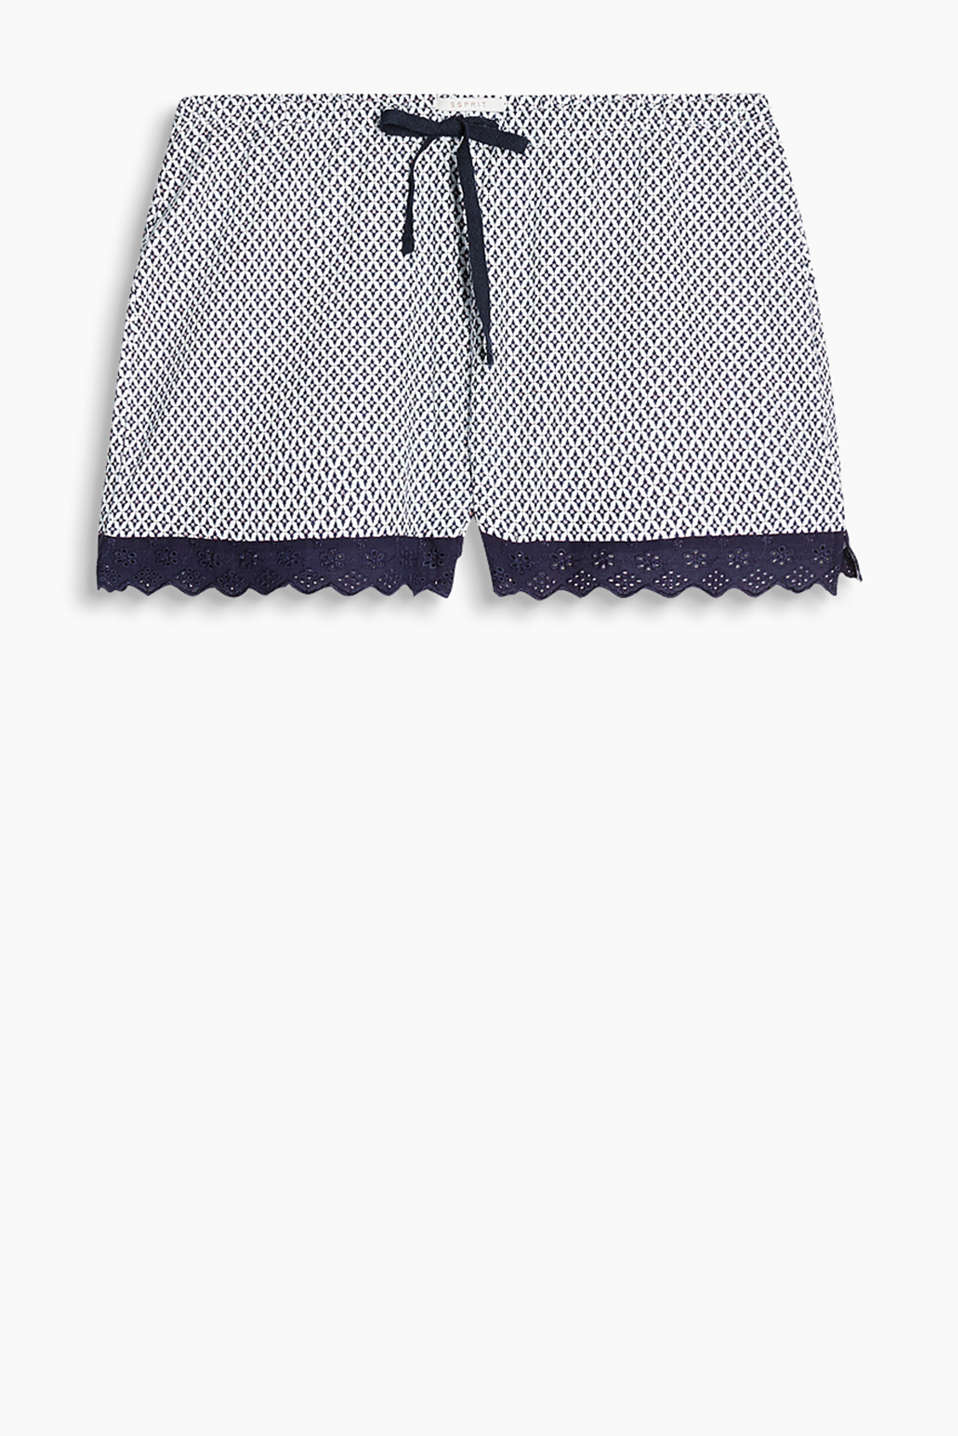 Soft jersey shorts with a minimalist print and hem trims with broderie anglaise, 100% cotton